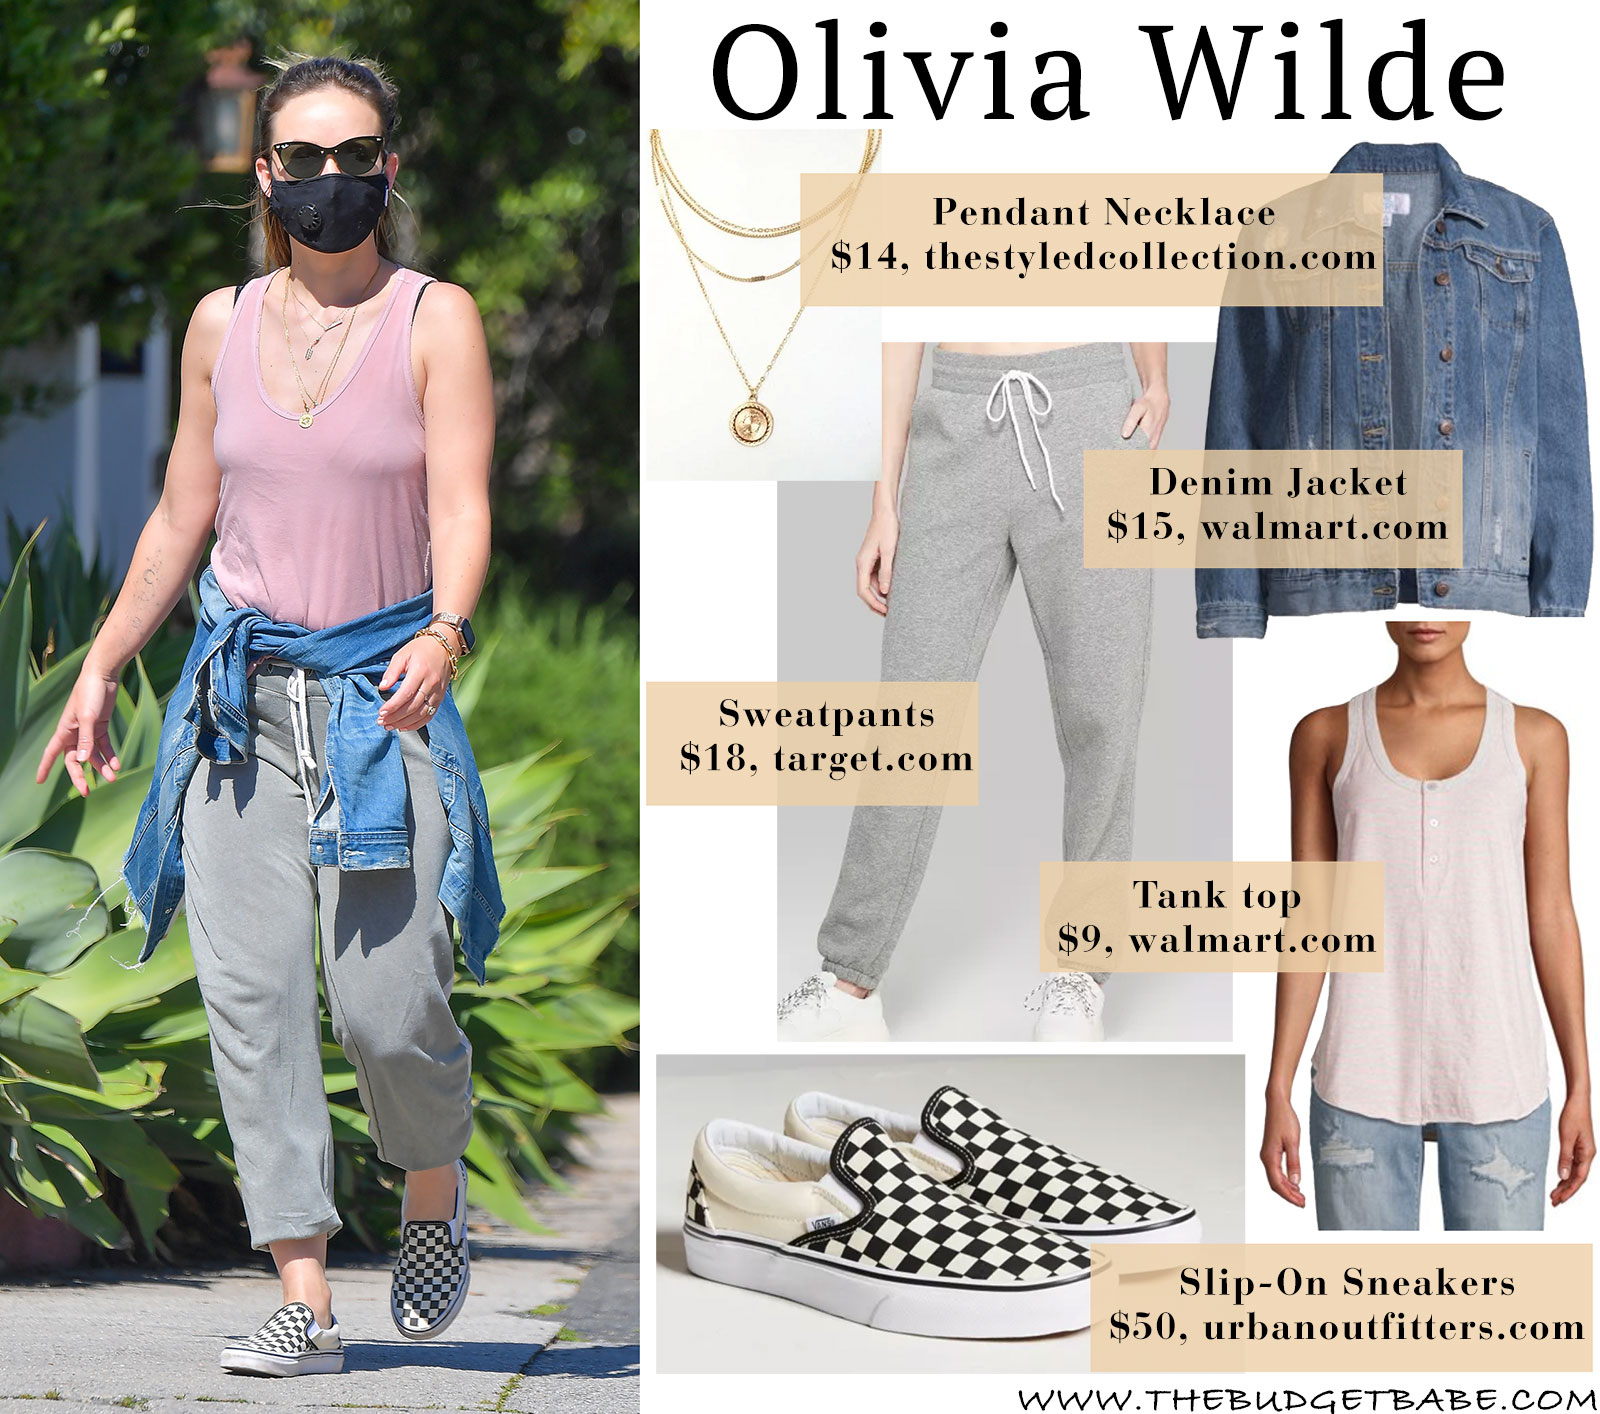 Olivia Wilde's social distancing look - so comfy and cute